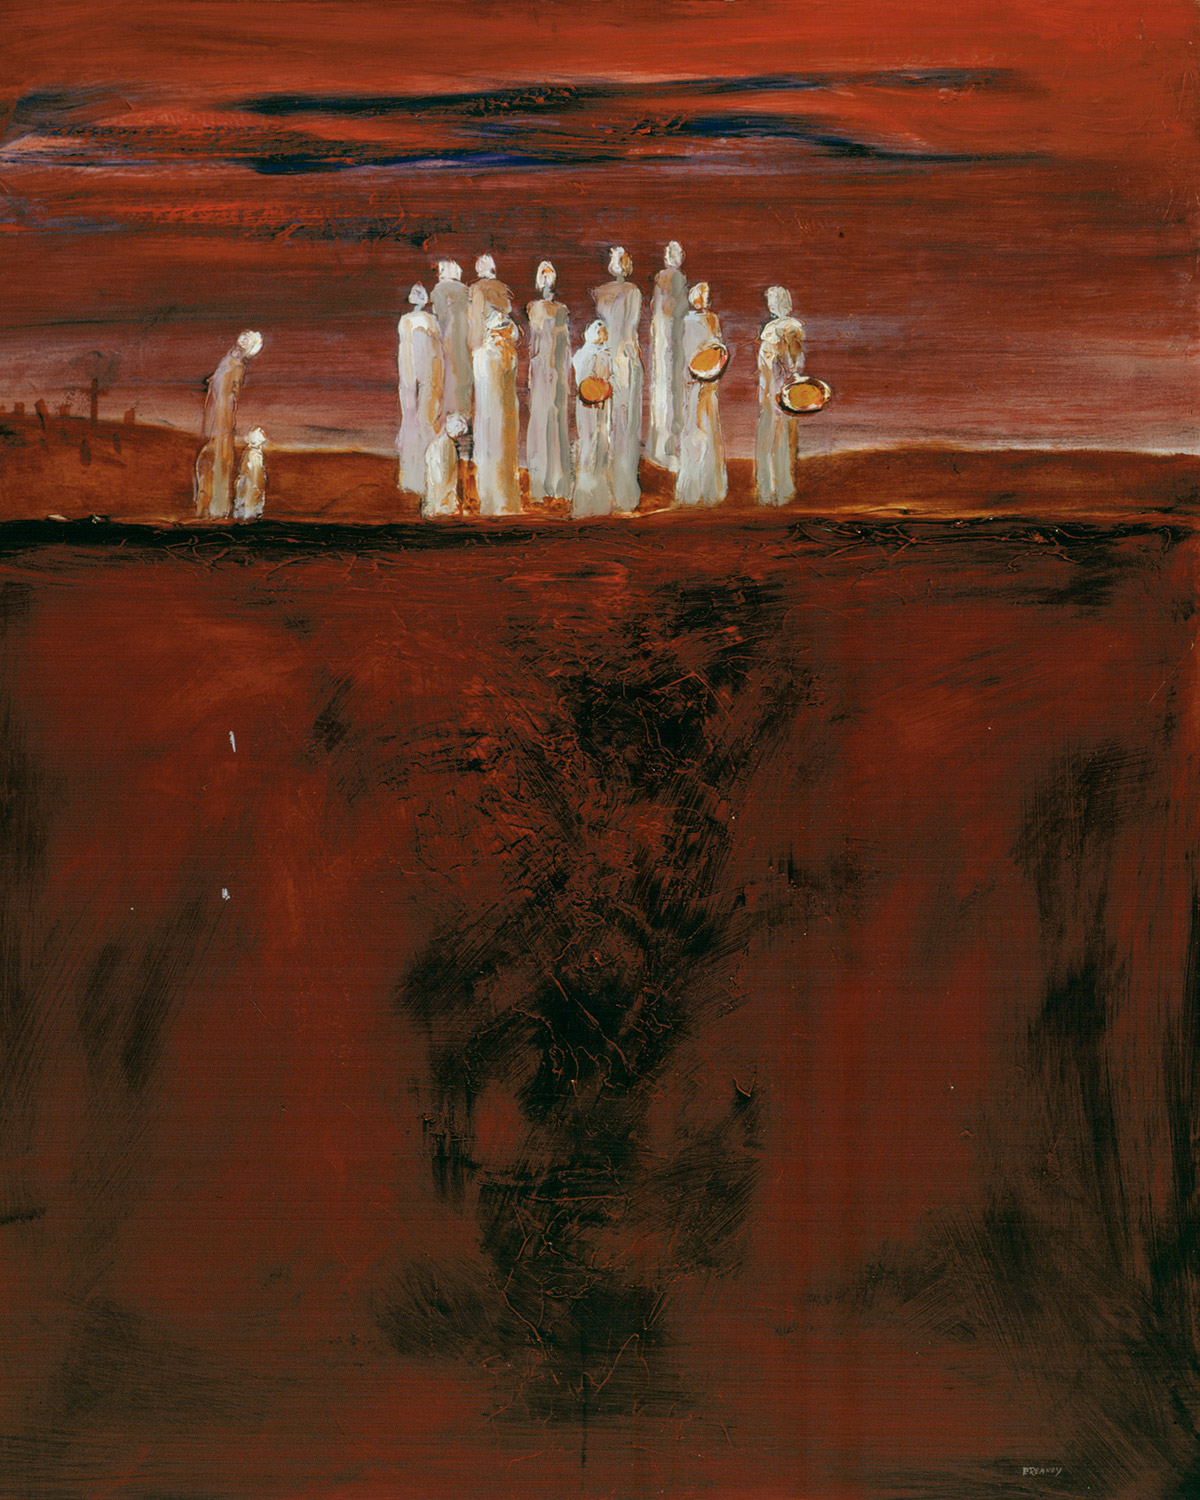 Gorta II. Oil on masonite. 1995. Padraic Reaney.